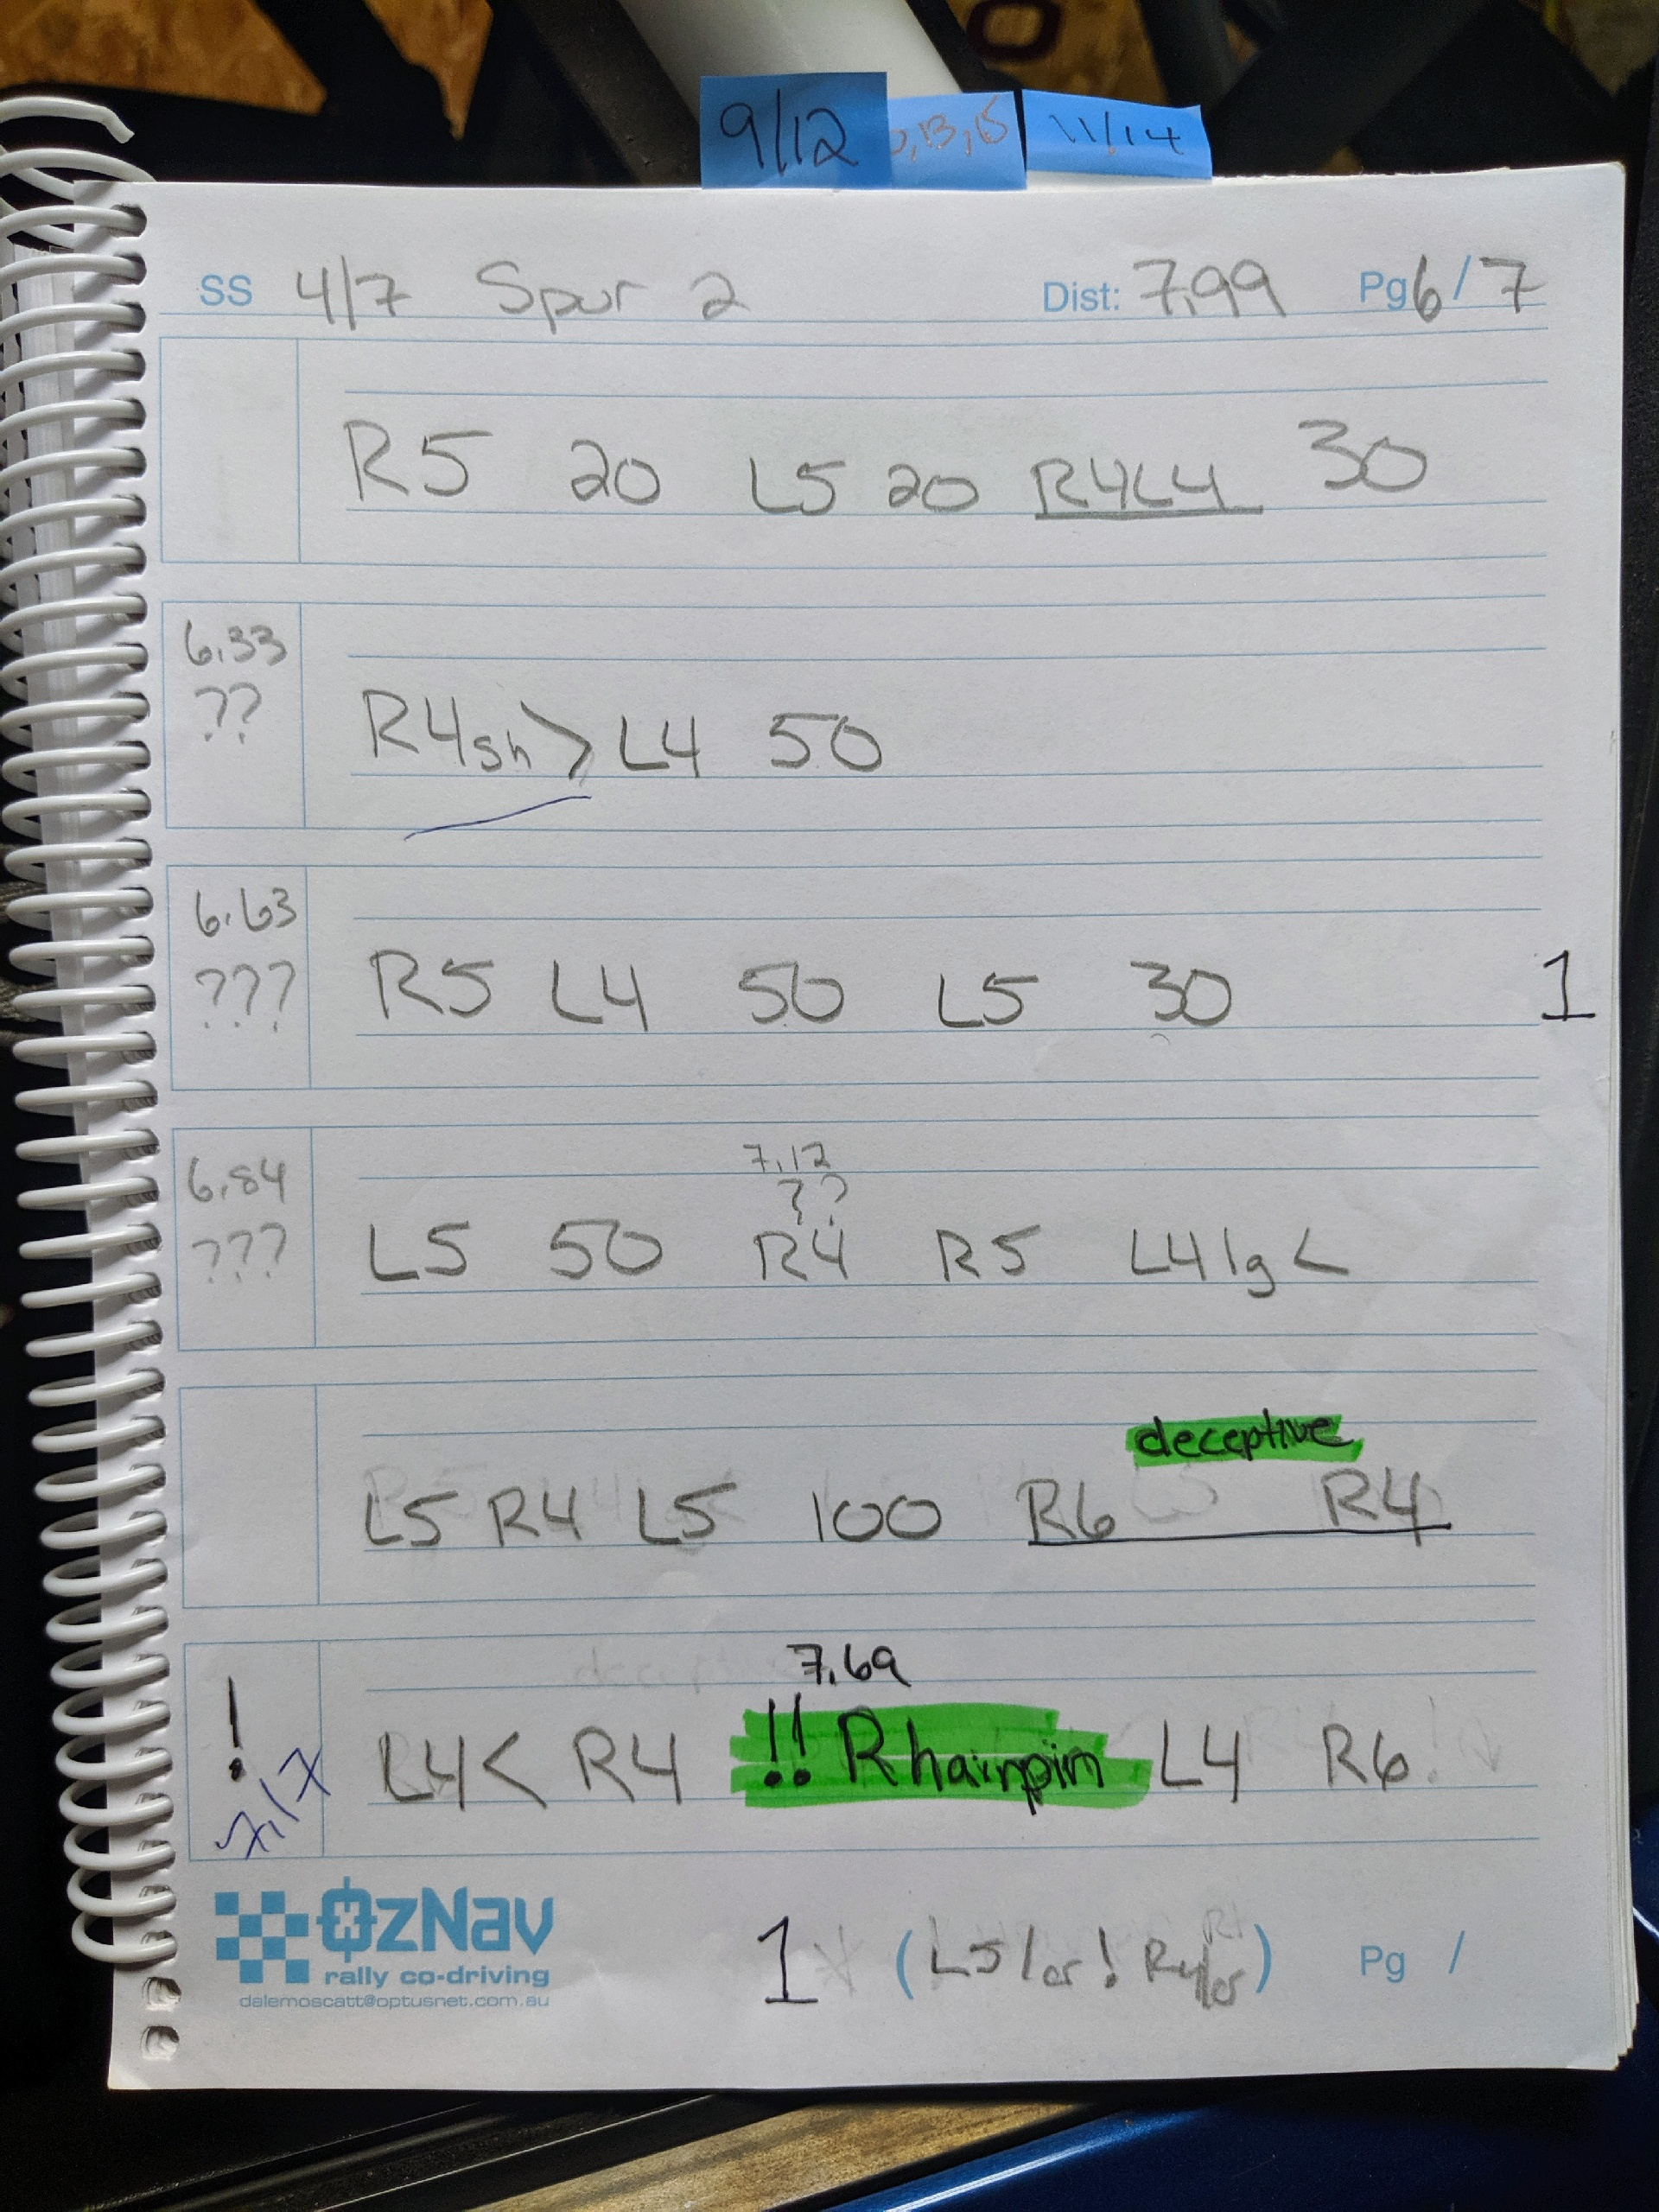 Ojibwe Forest Rally Stage Notes